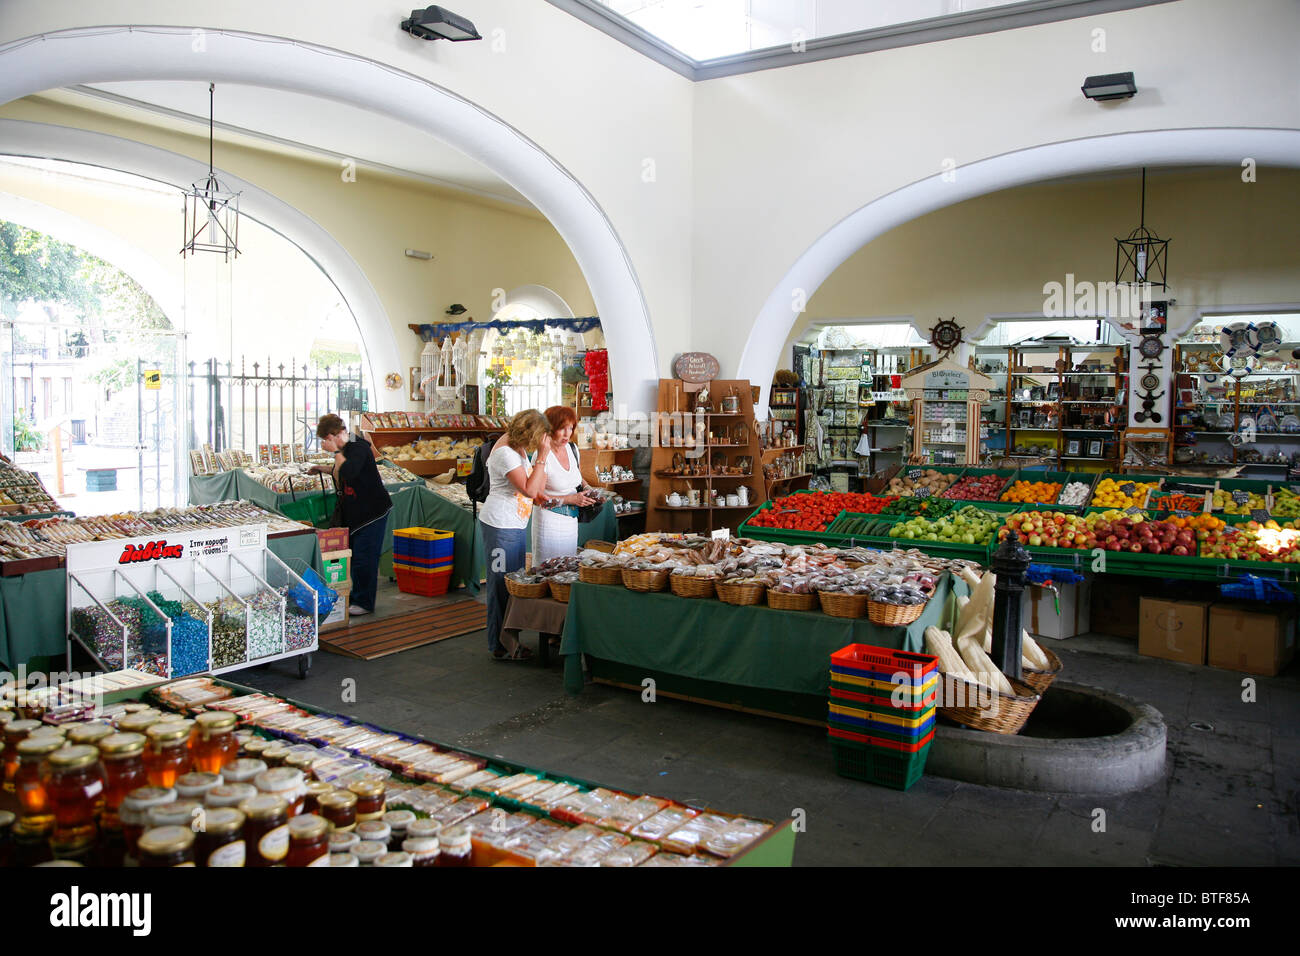 Fruits vegetables and spices at the central market in Kos Town, Kos, Greece.Stock Photo